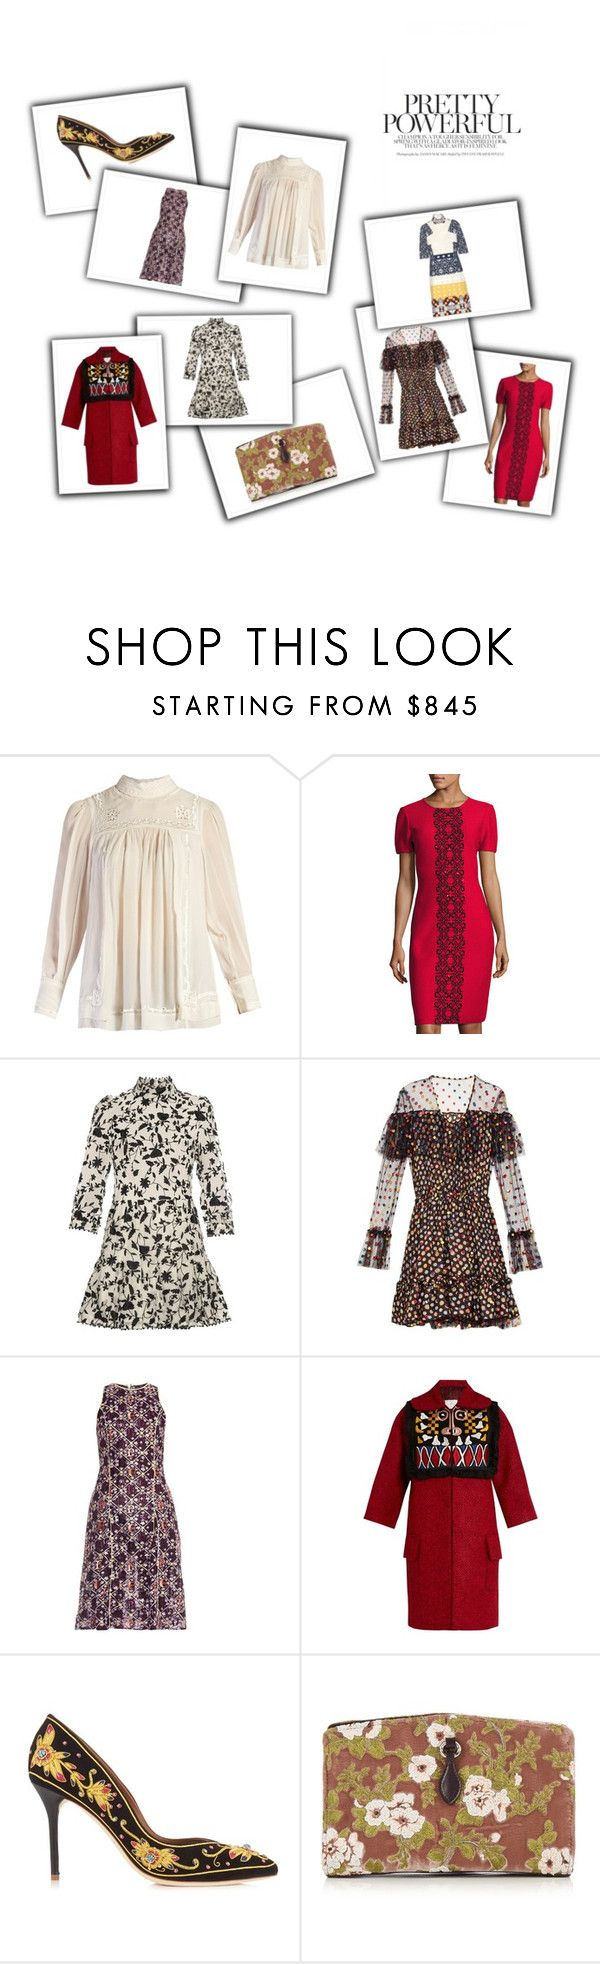 """""""Embroidered Dresses"""" by bonnielindsay on Polyvore featuring Isabel Marant, St. John, Zimmermann, Marco de Vincenzo, Mary Katrantzou, Stella Jean, Malone Souliers, Rochas and Teatum Jones"""